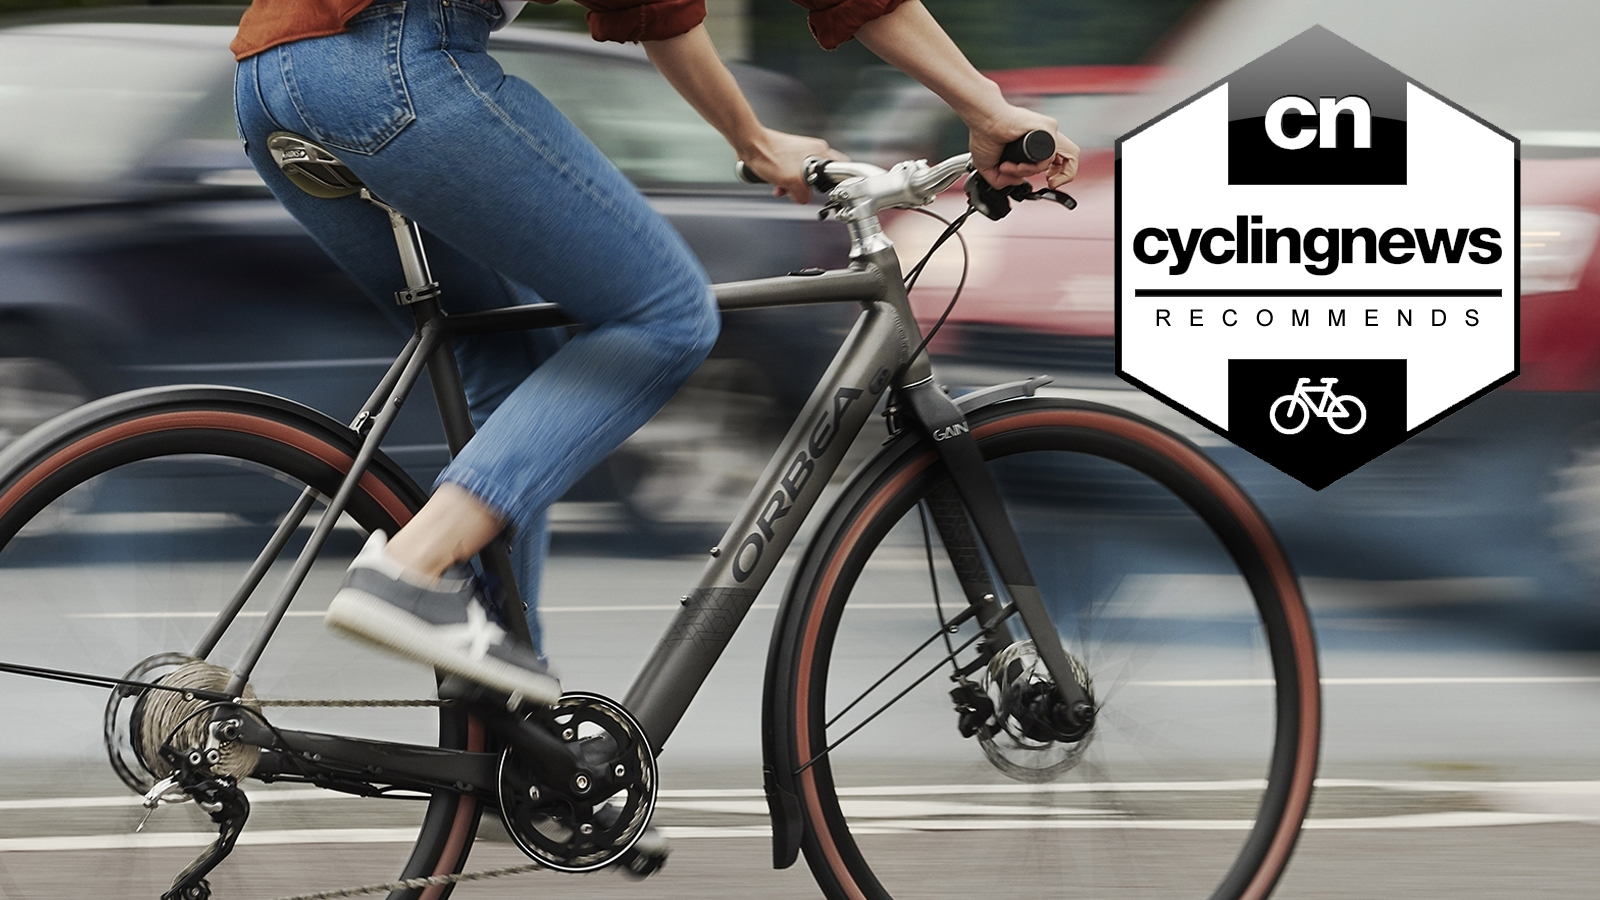 Best Commuter Bikes Folding Hybrid E Bikes And More To Get You To Work On Two Wheels Cyclingnews